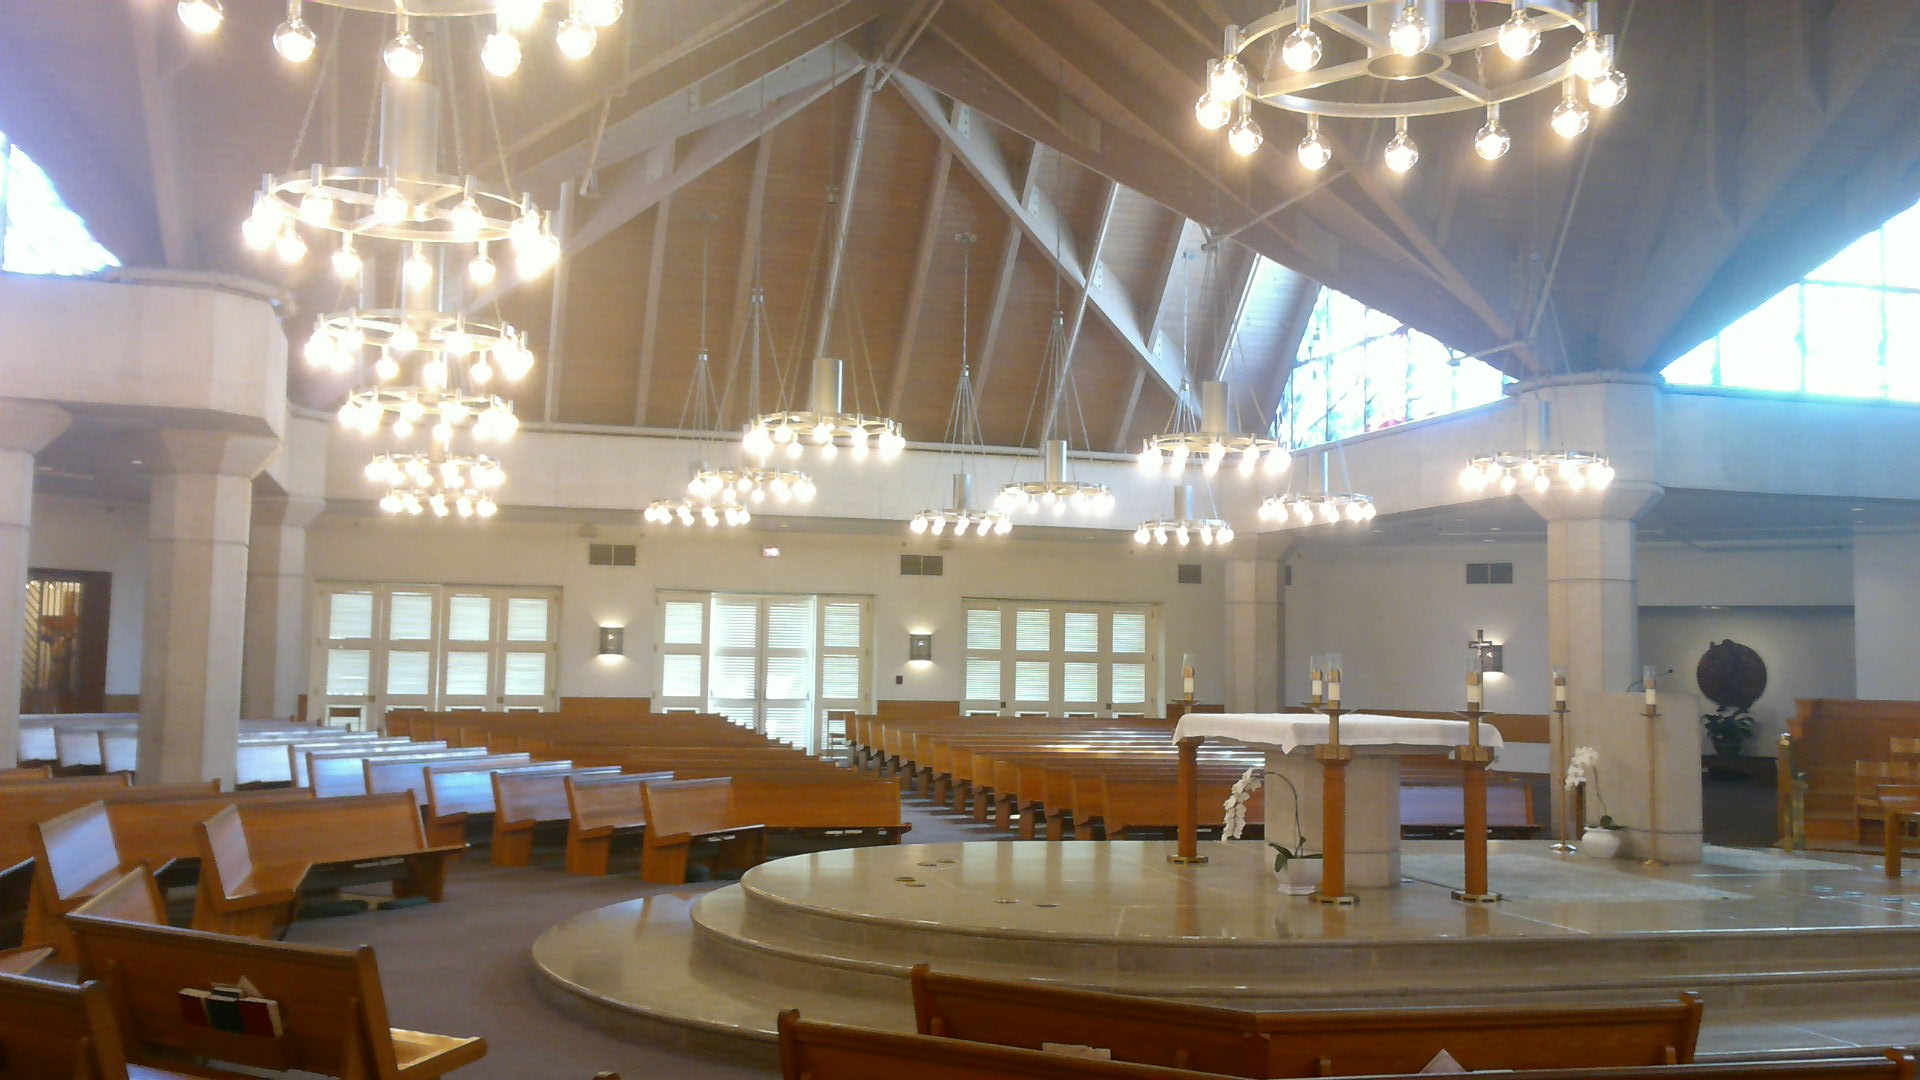 New Chandeliers at St Ritas Catholic Church  AAMSCO